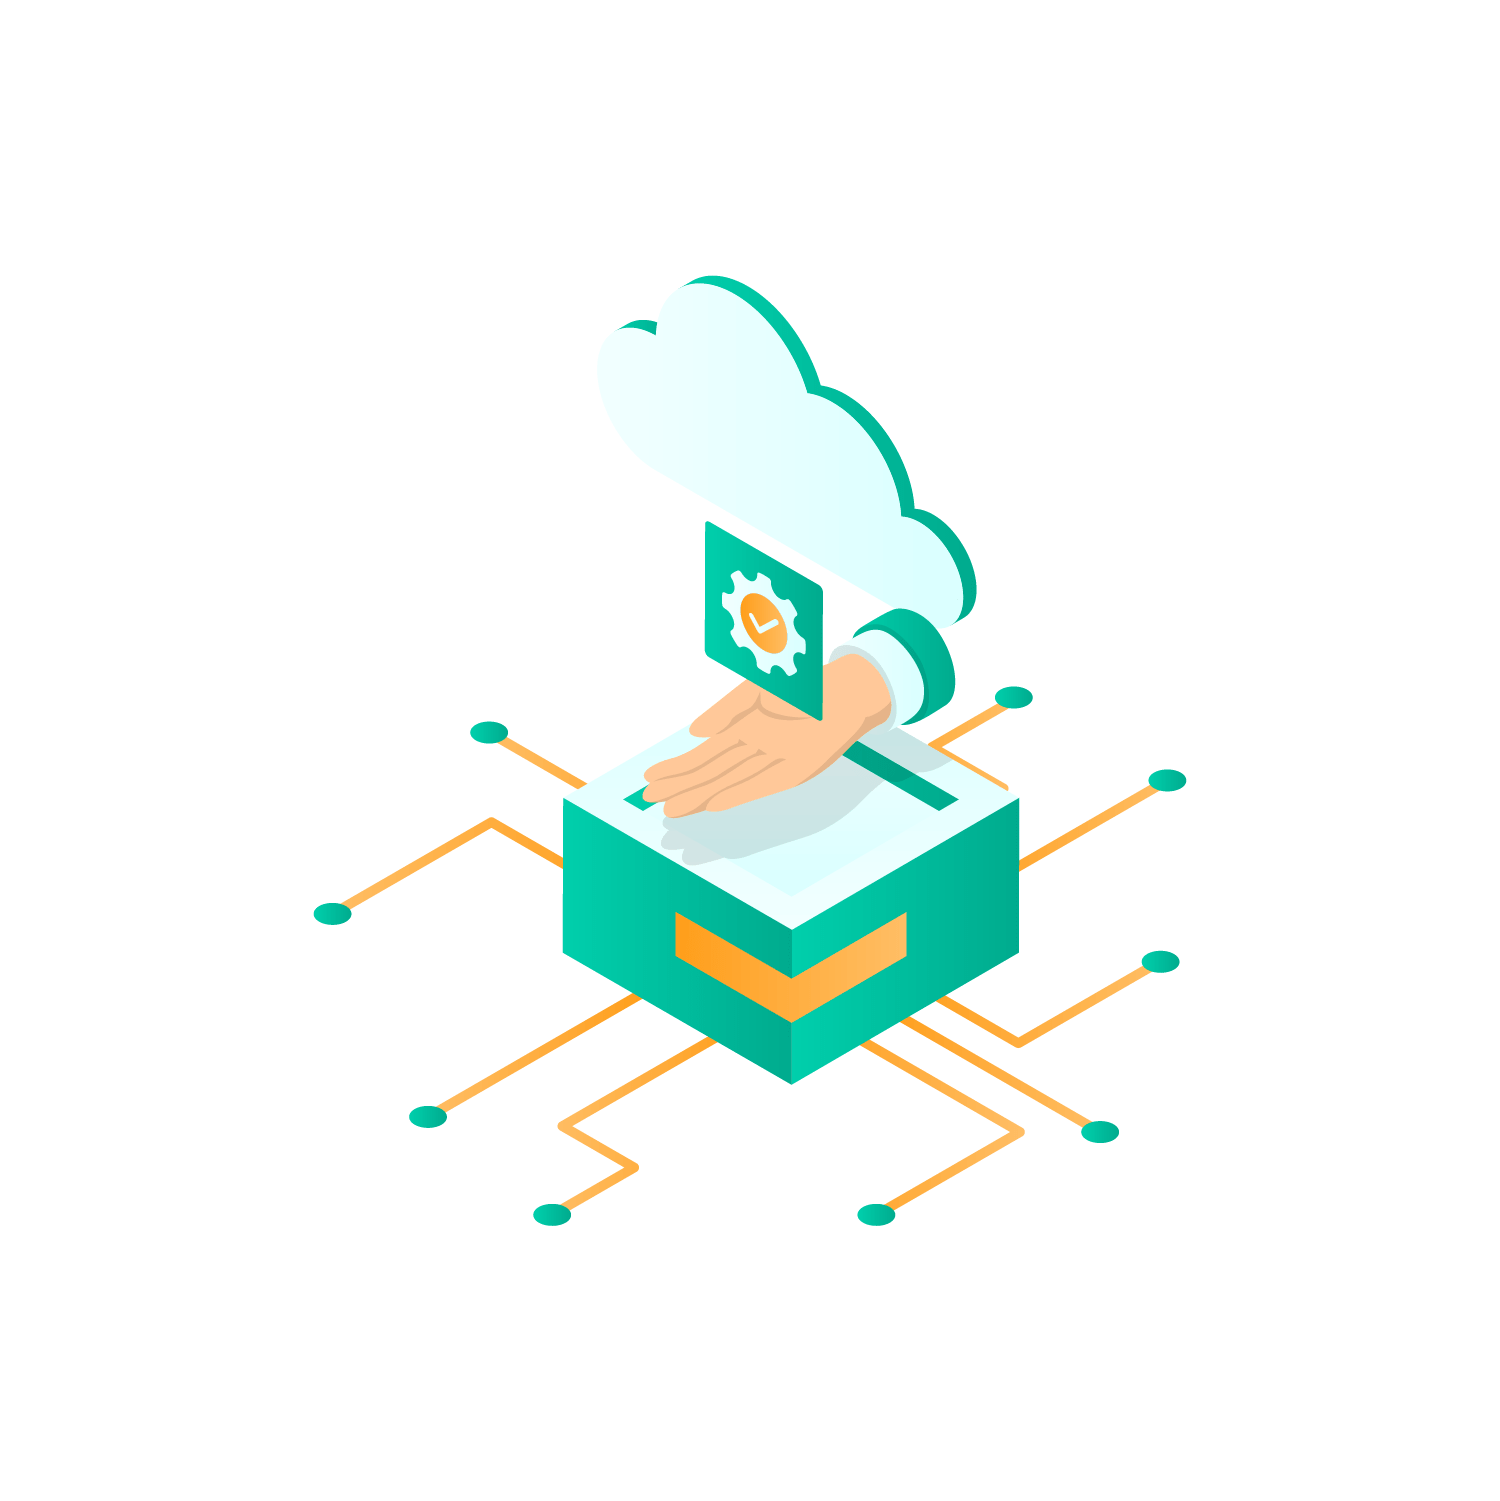 illustration of a cloud over a box